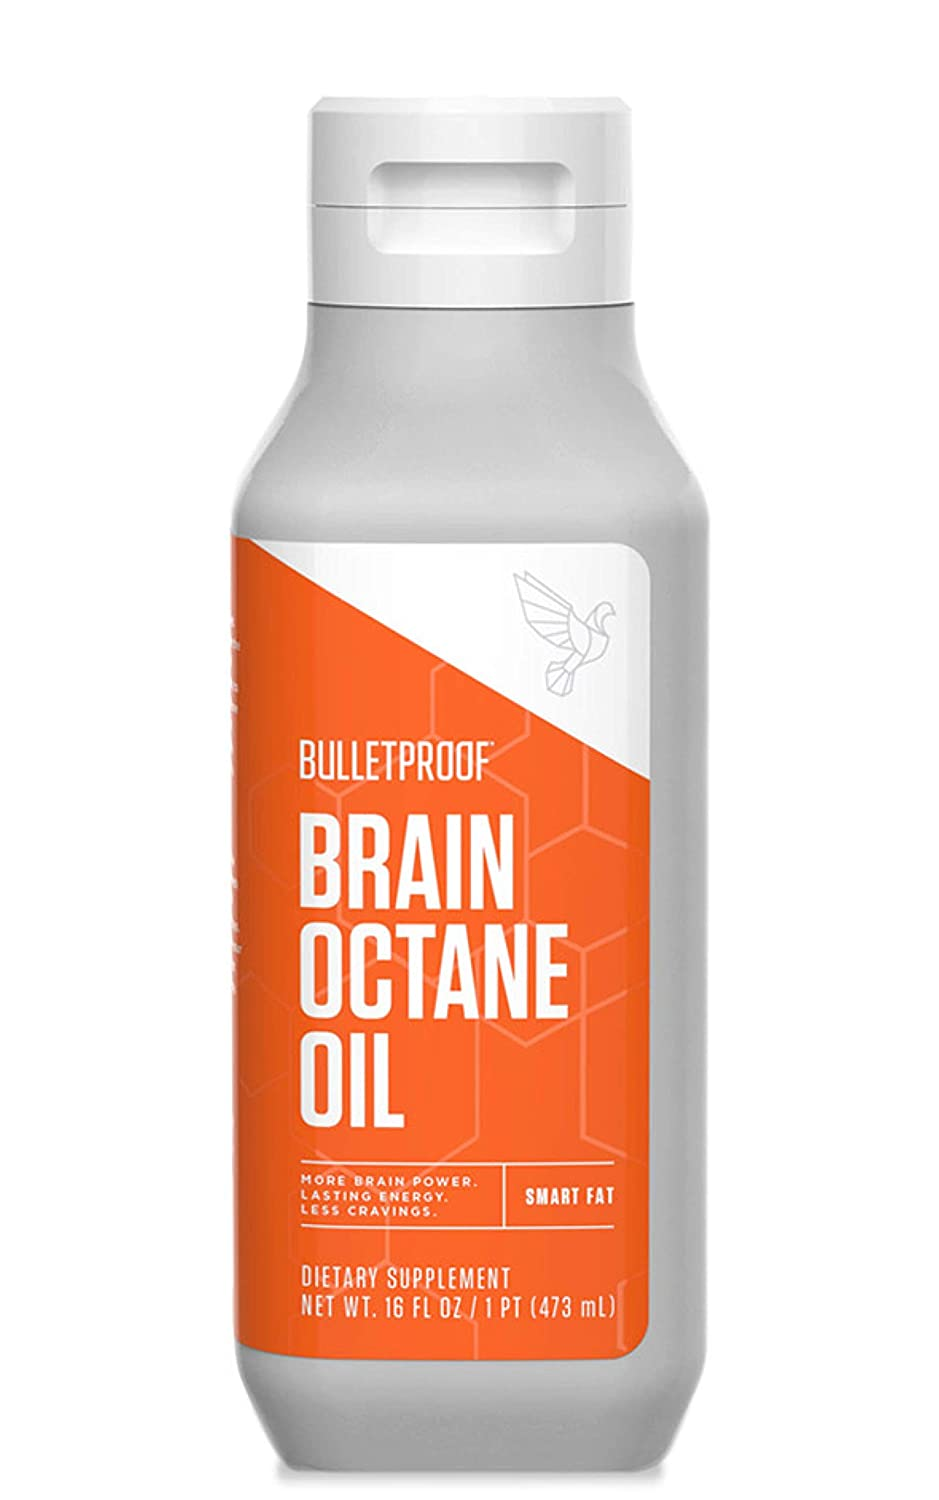 Bulletproof Brain Octane Oil, Reliable and Quick Source of Energy,  Ketogenic Diet, More Than Just MCT